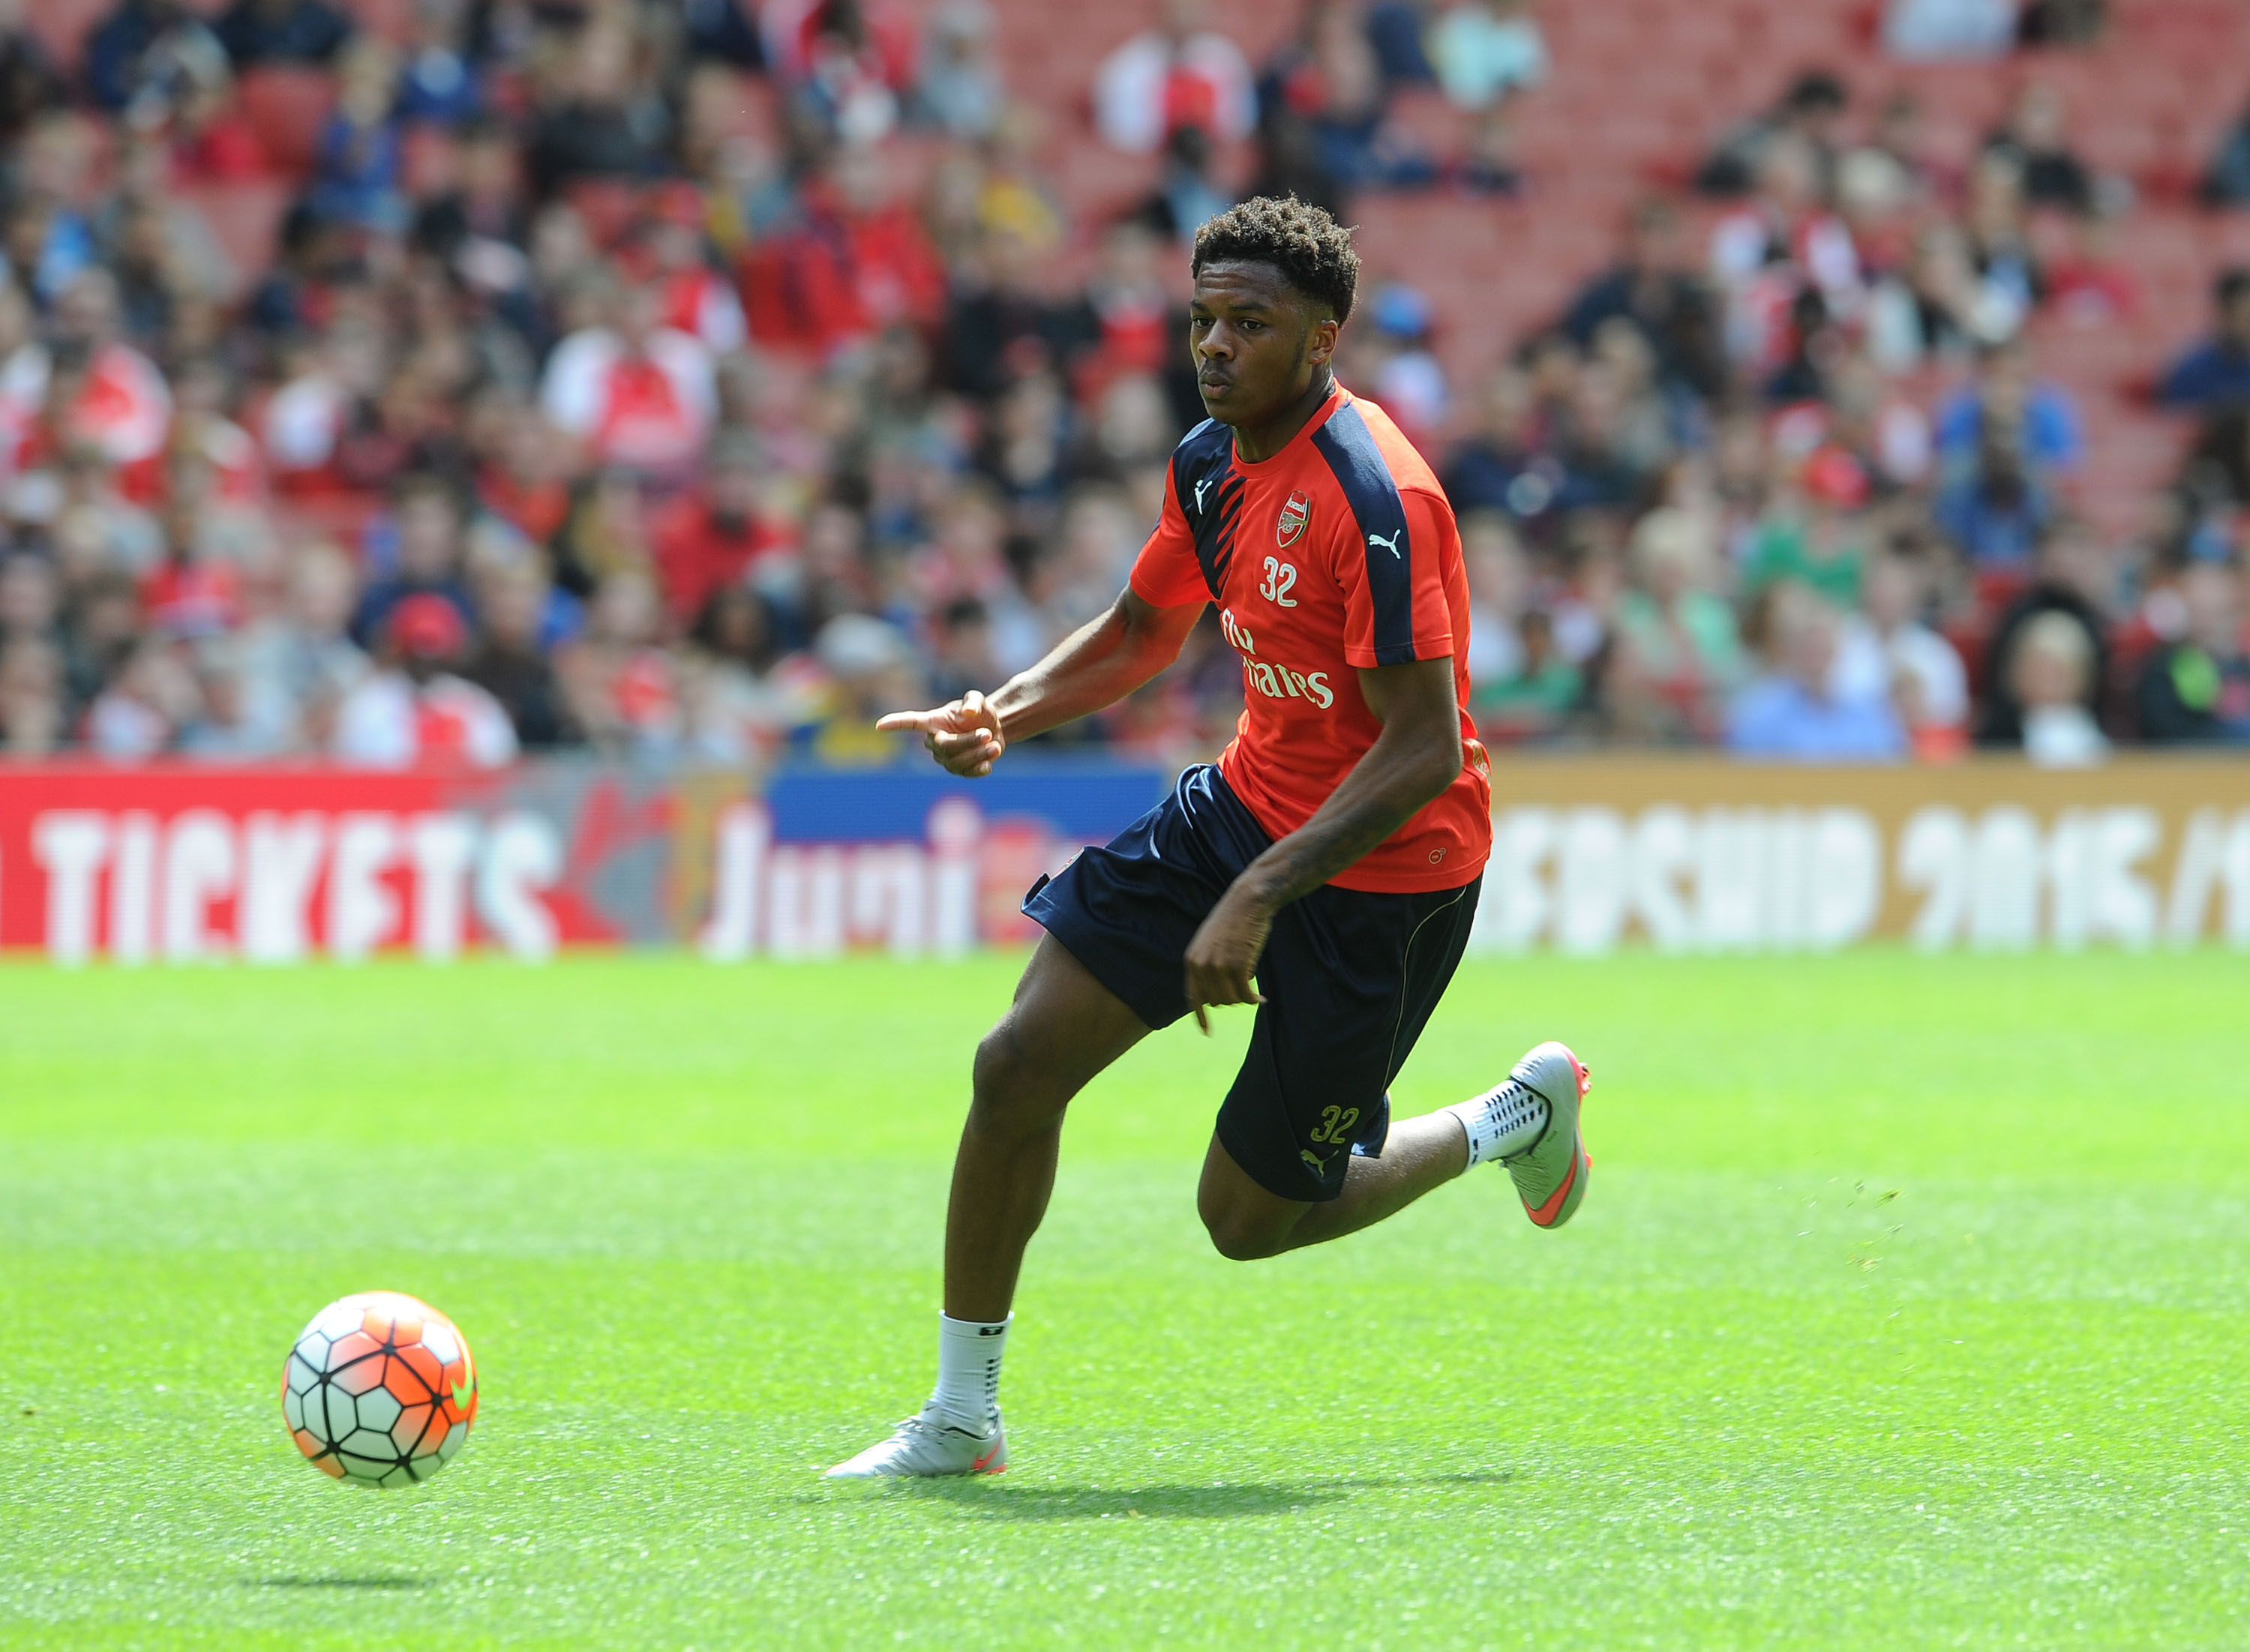 Arsenal striker Chuba Akpom hopes to replicate Tottenham's Harry Kane